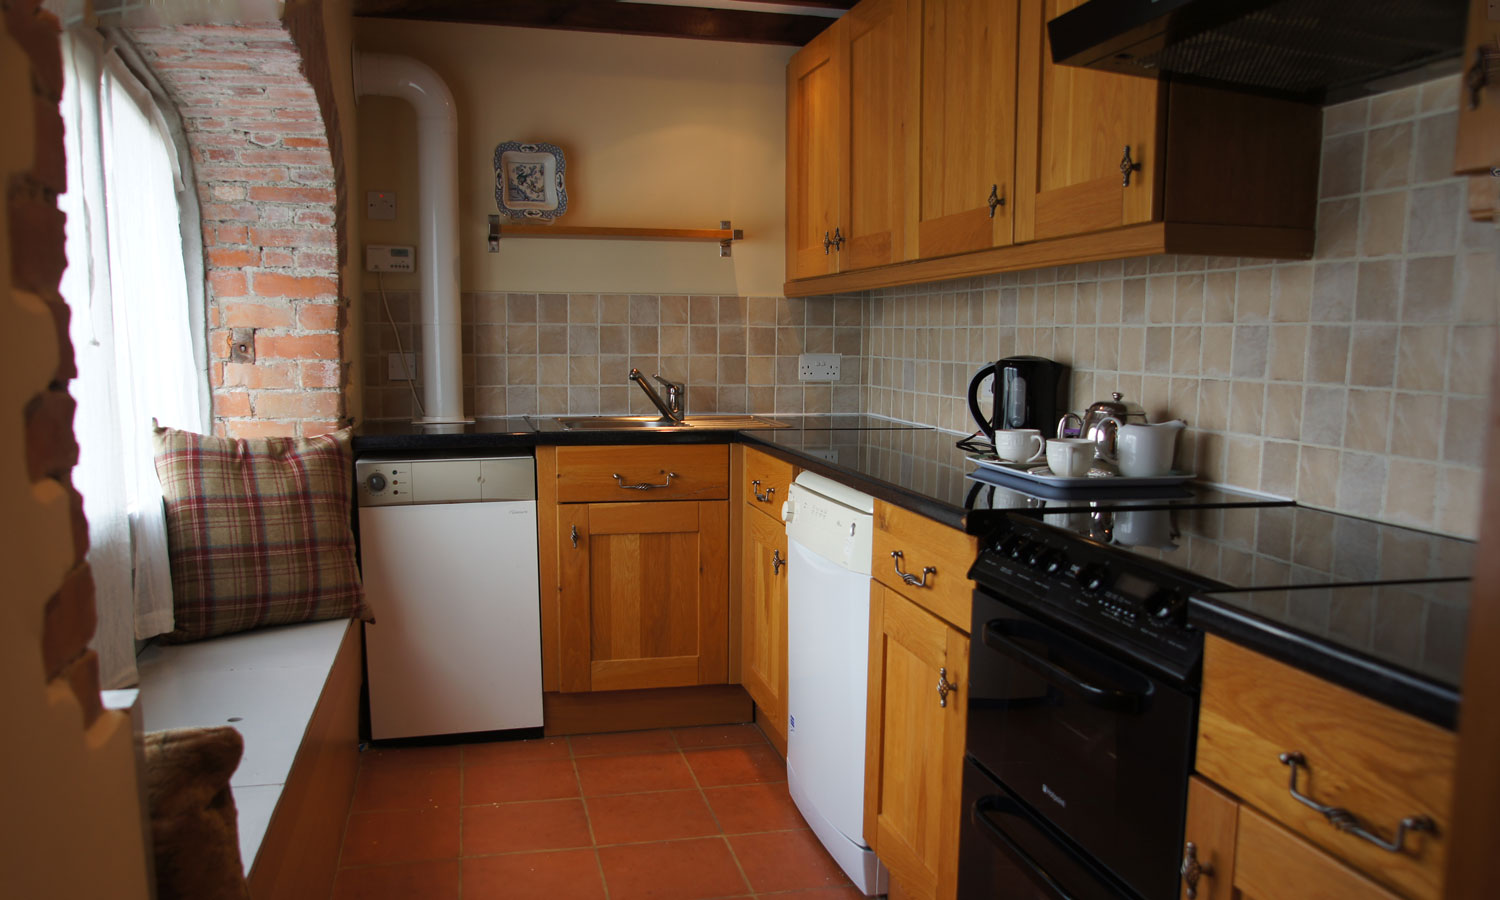 Modern and well equipped kitchen in Meadow Barn Holiday Cottage. Natural colours and textures reflect local beaches